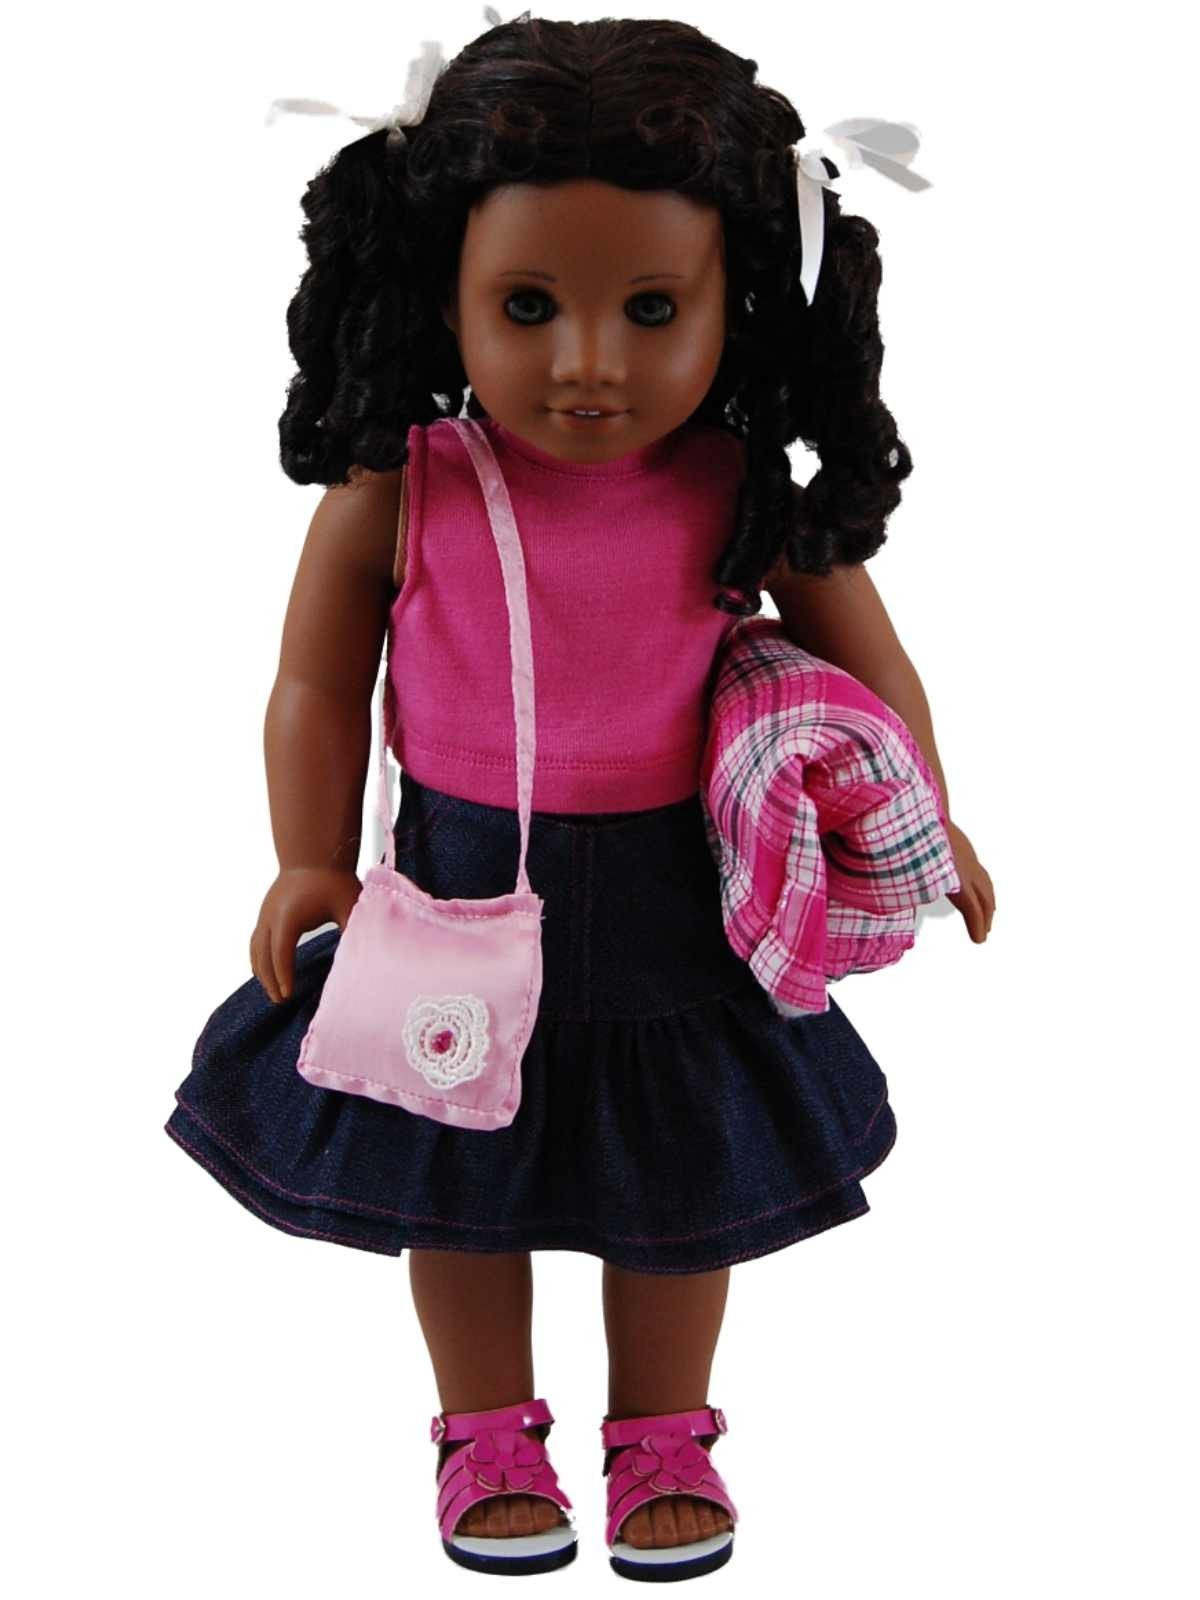 Fresh Plaid Jacket and Denim Doll Clothes Skirt Set for 18 American Girl Doll Skirts Of Incredible 50 Ideas American Girl Doll Skirts